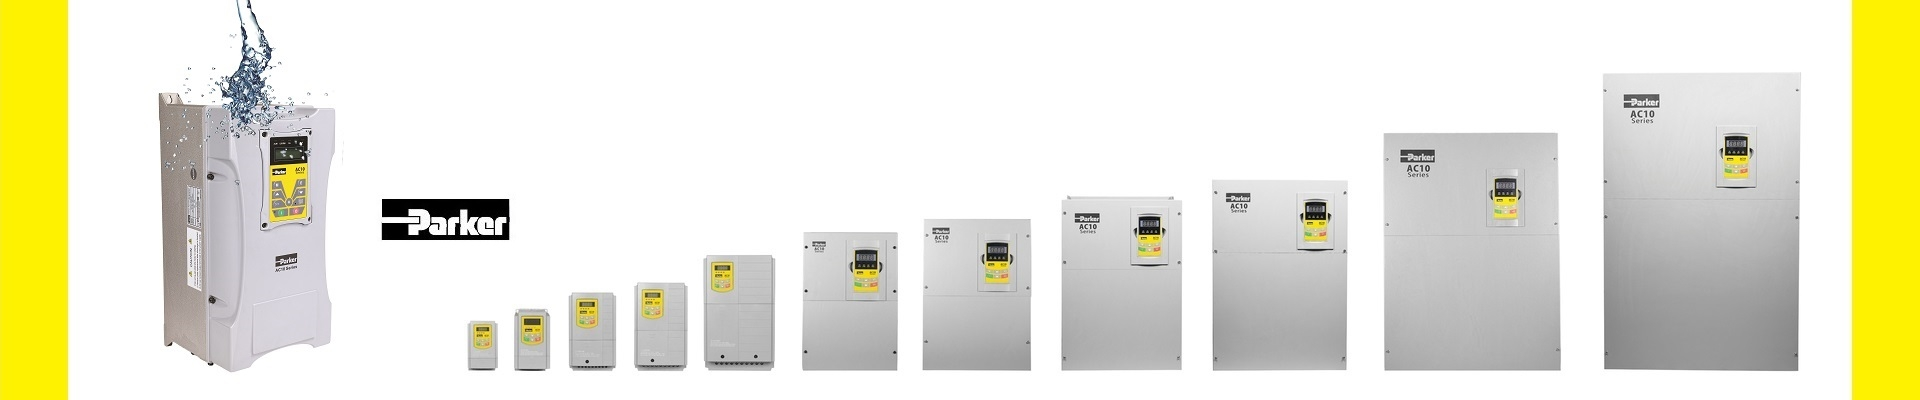 Parker AC10 Series Frequency Inverters